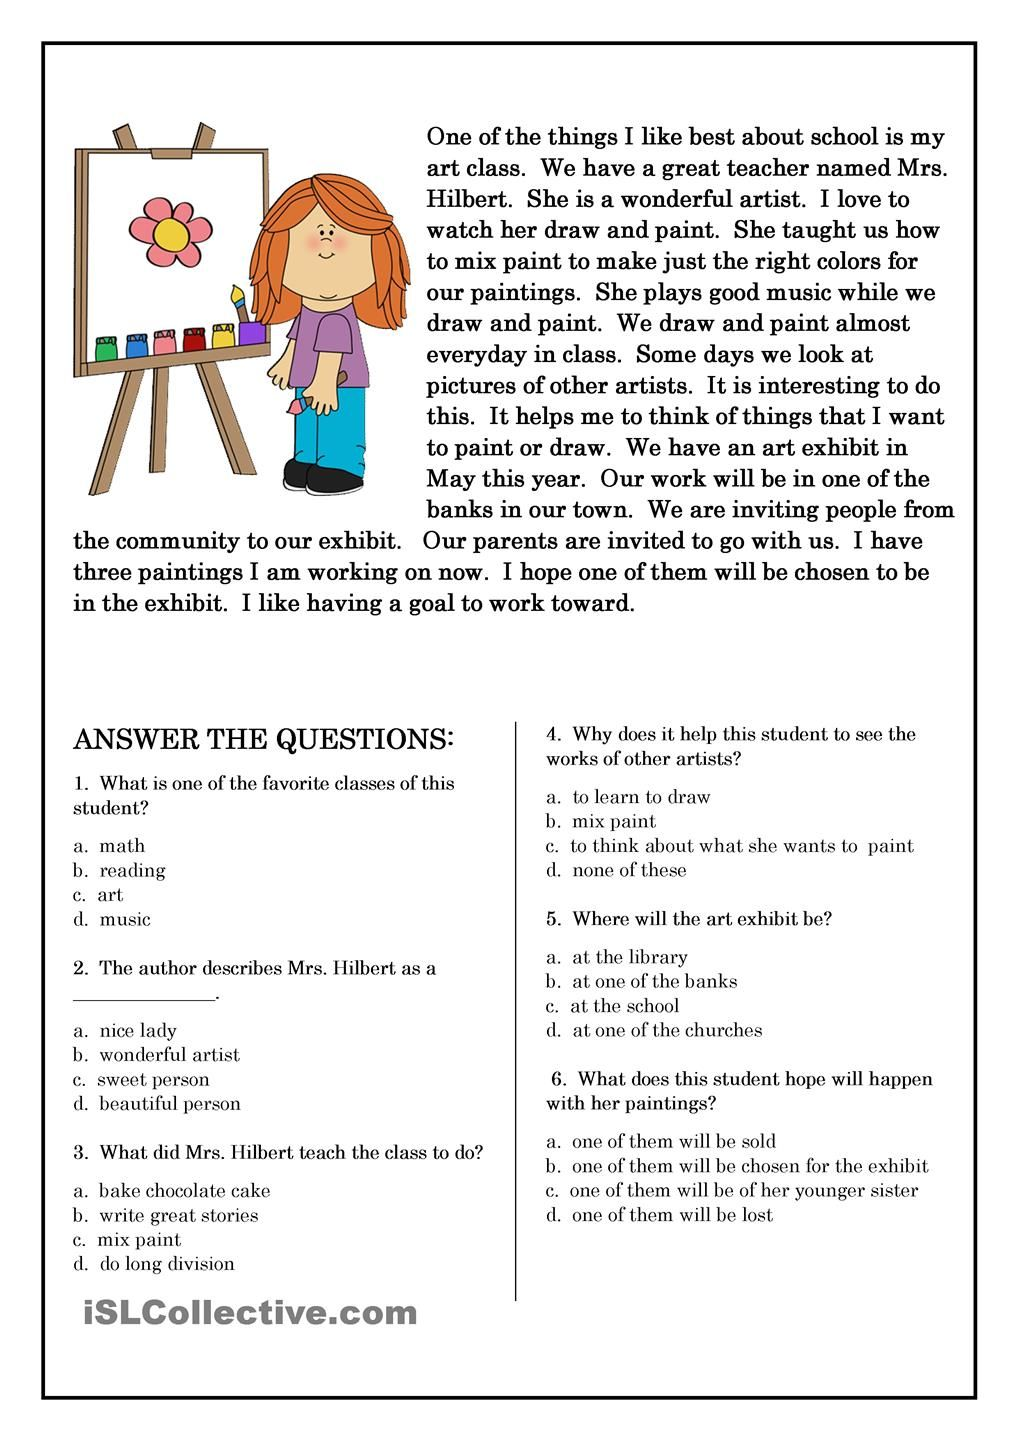 worksheet Reading Practice Worksheets 78 best images about reading comprehension on pinterest simple sentences grade 1 and english short stories